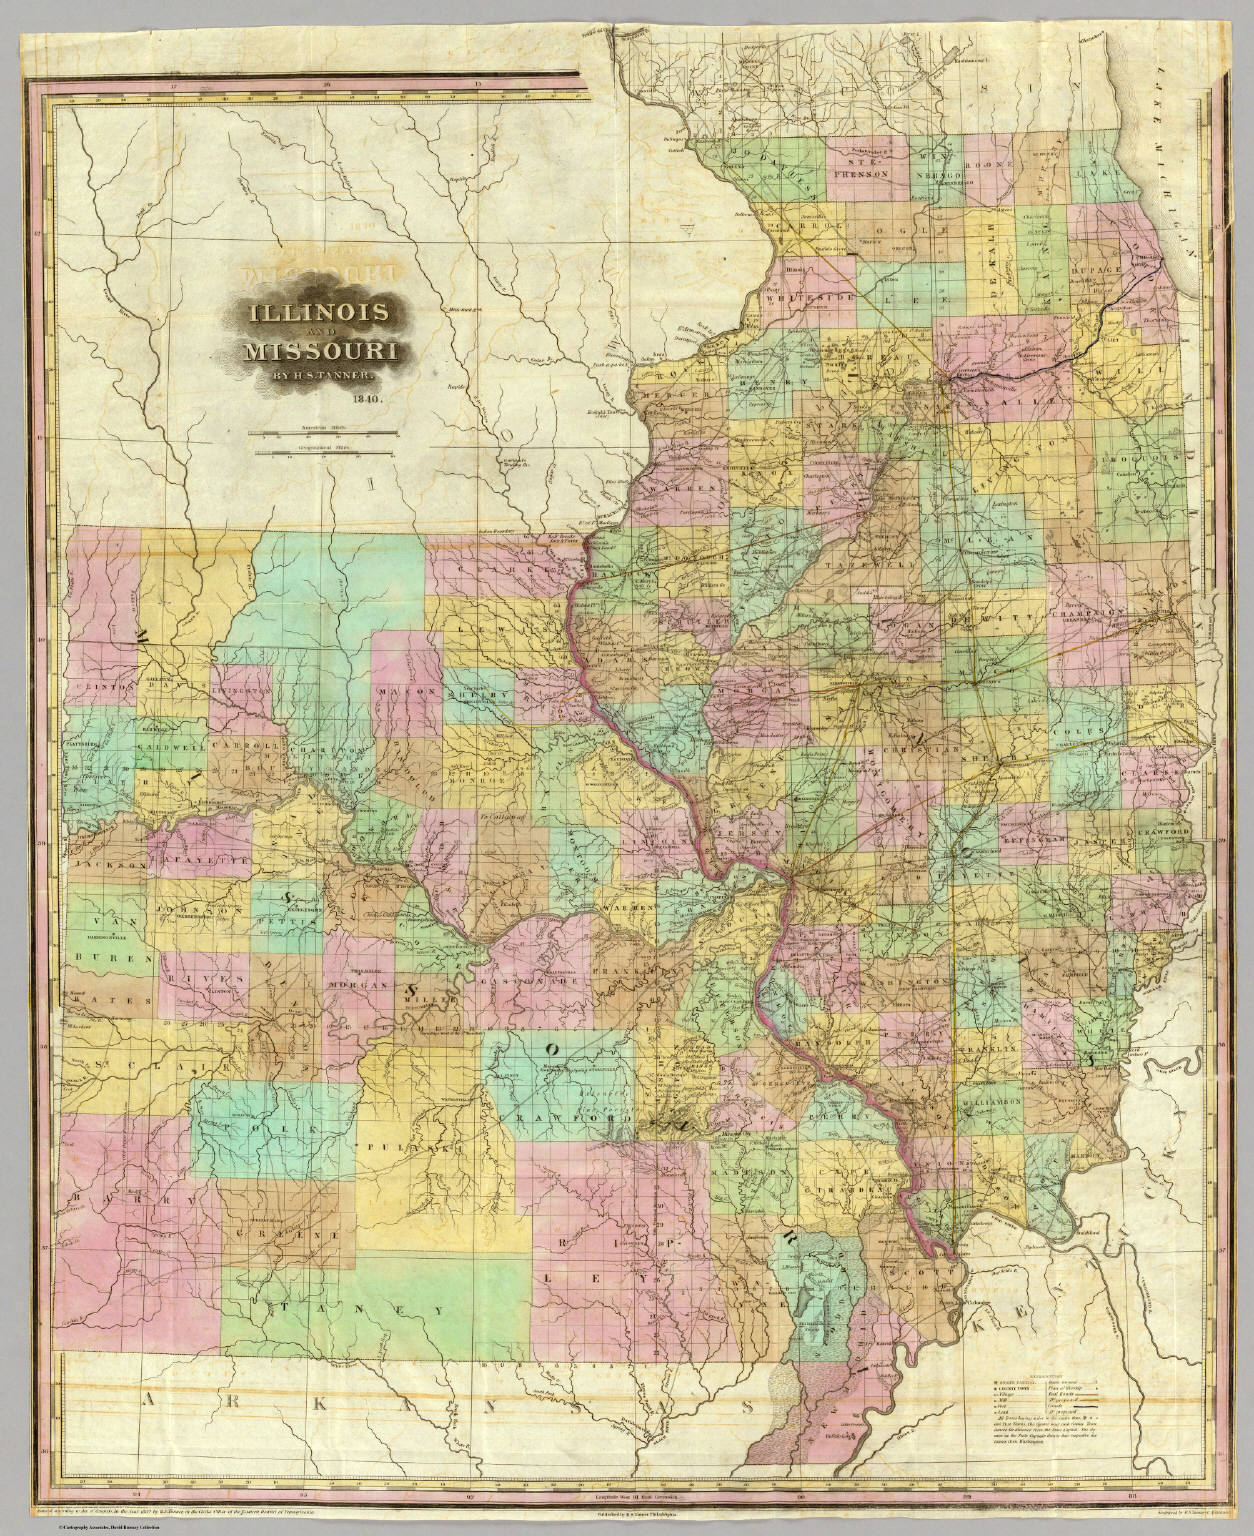 Illinois and Missouri Tanner Henry S 1840